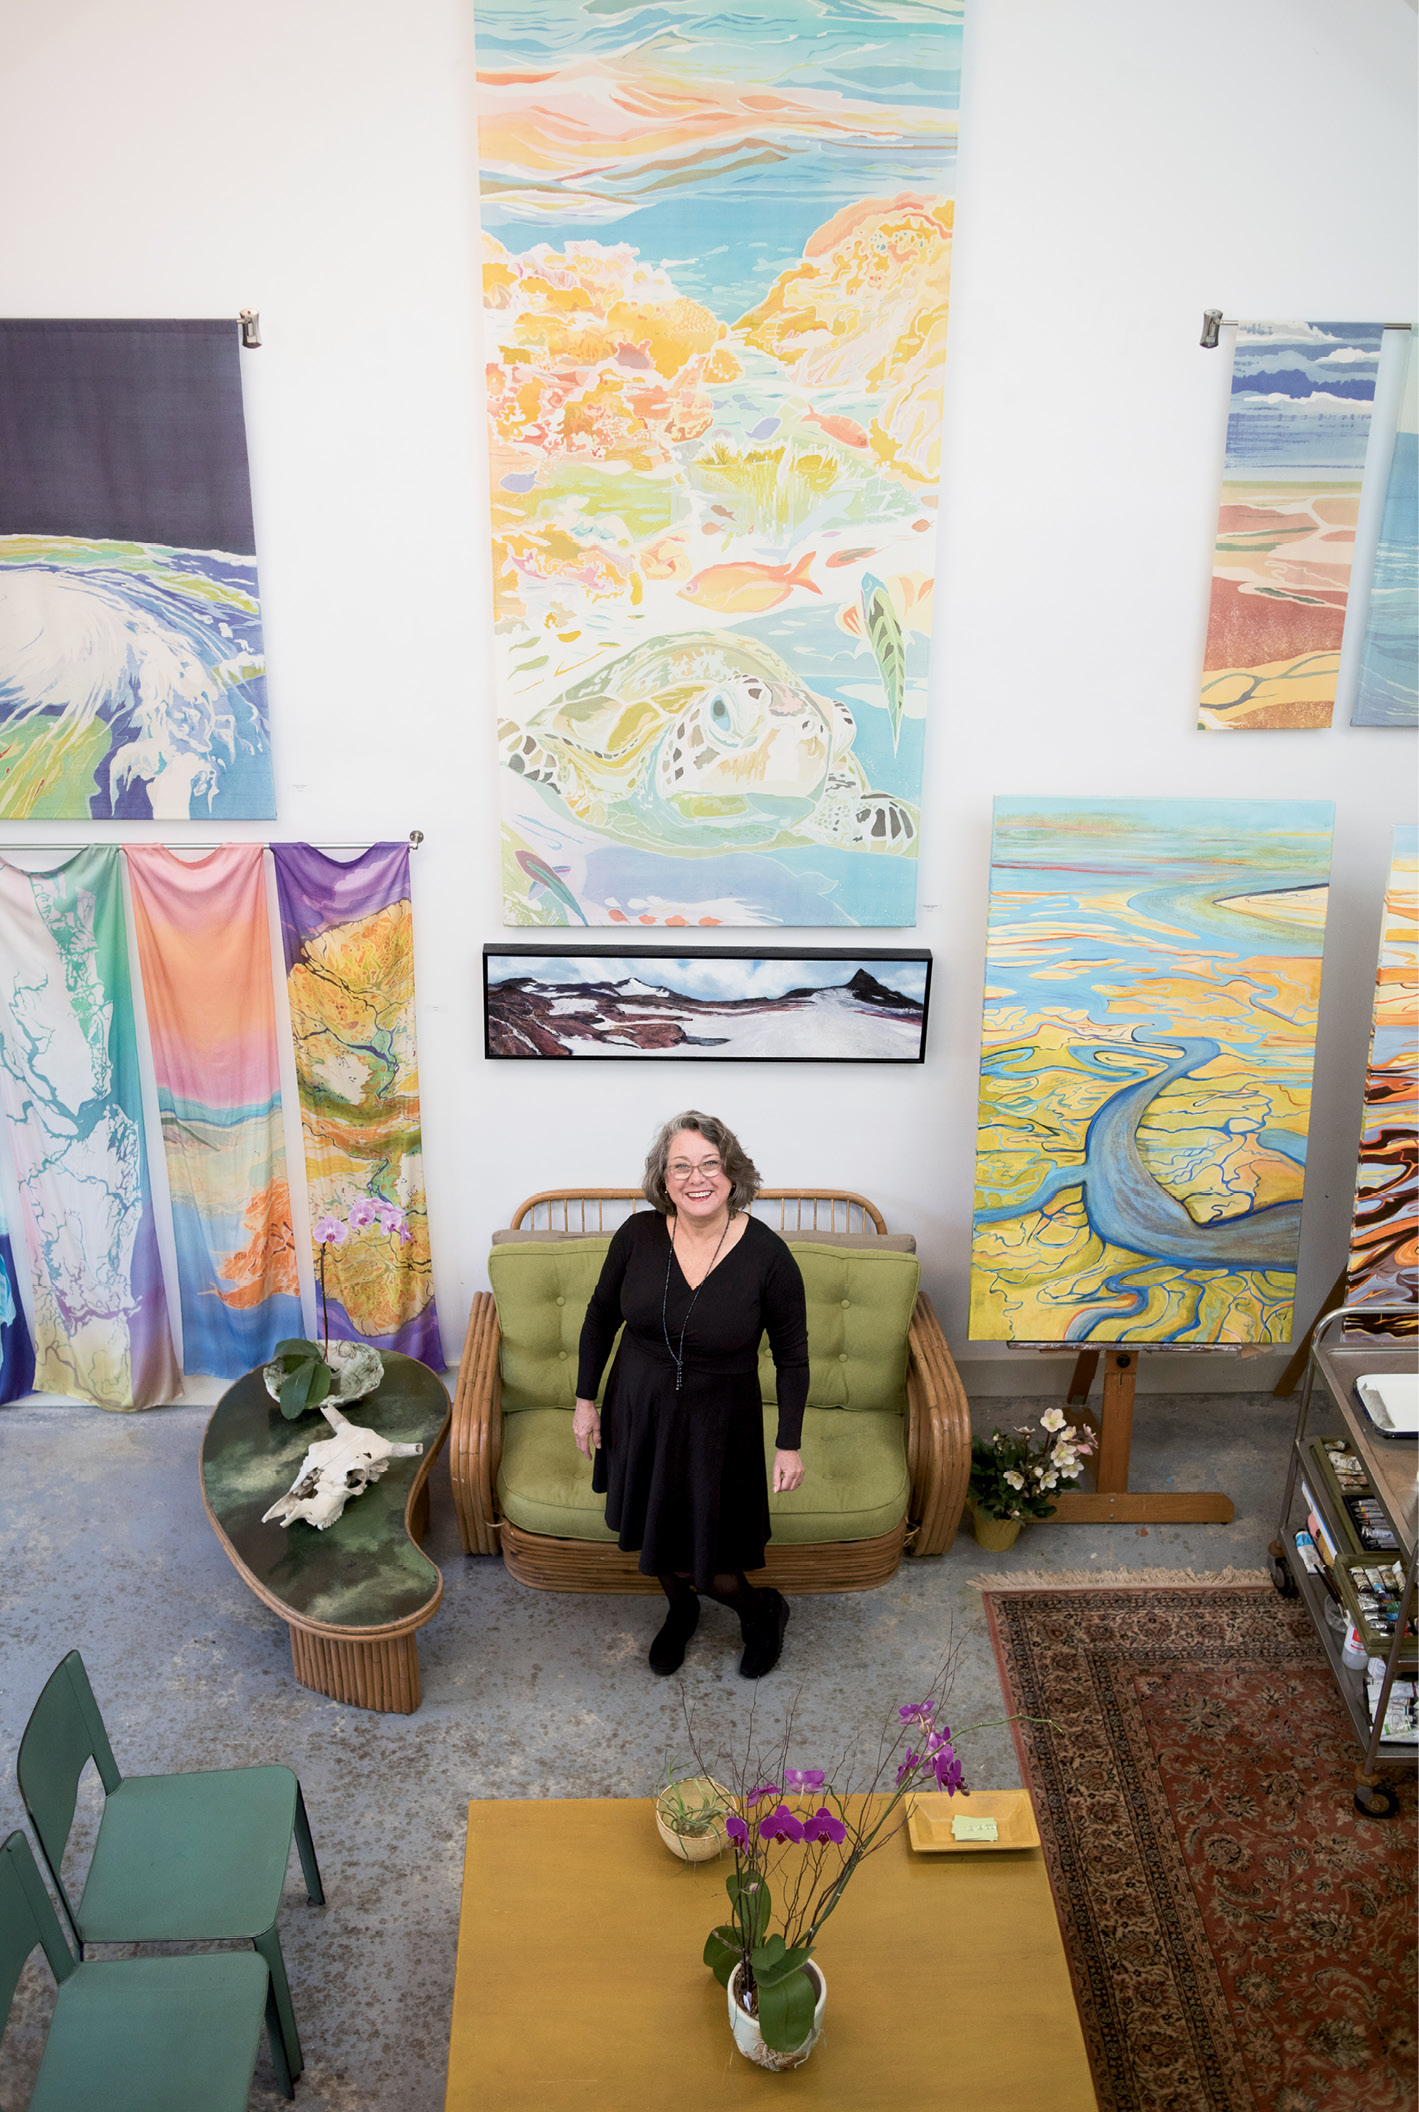 """Looking Up: Fraser (photographed in her studio) brings an aerial perspective to her works, giving viewers a broader understanding of how human actions impact the landscape. """"I go where I feel I'm most needed,"""" she says, in choosing her subject matter."""